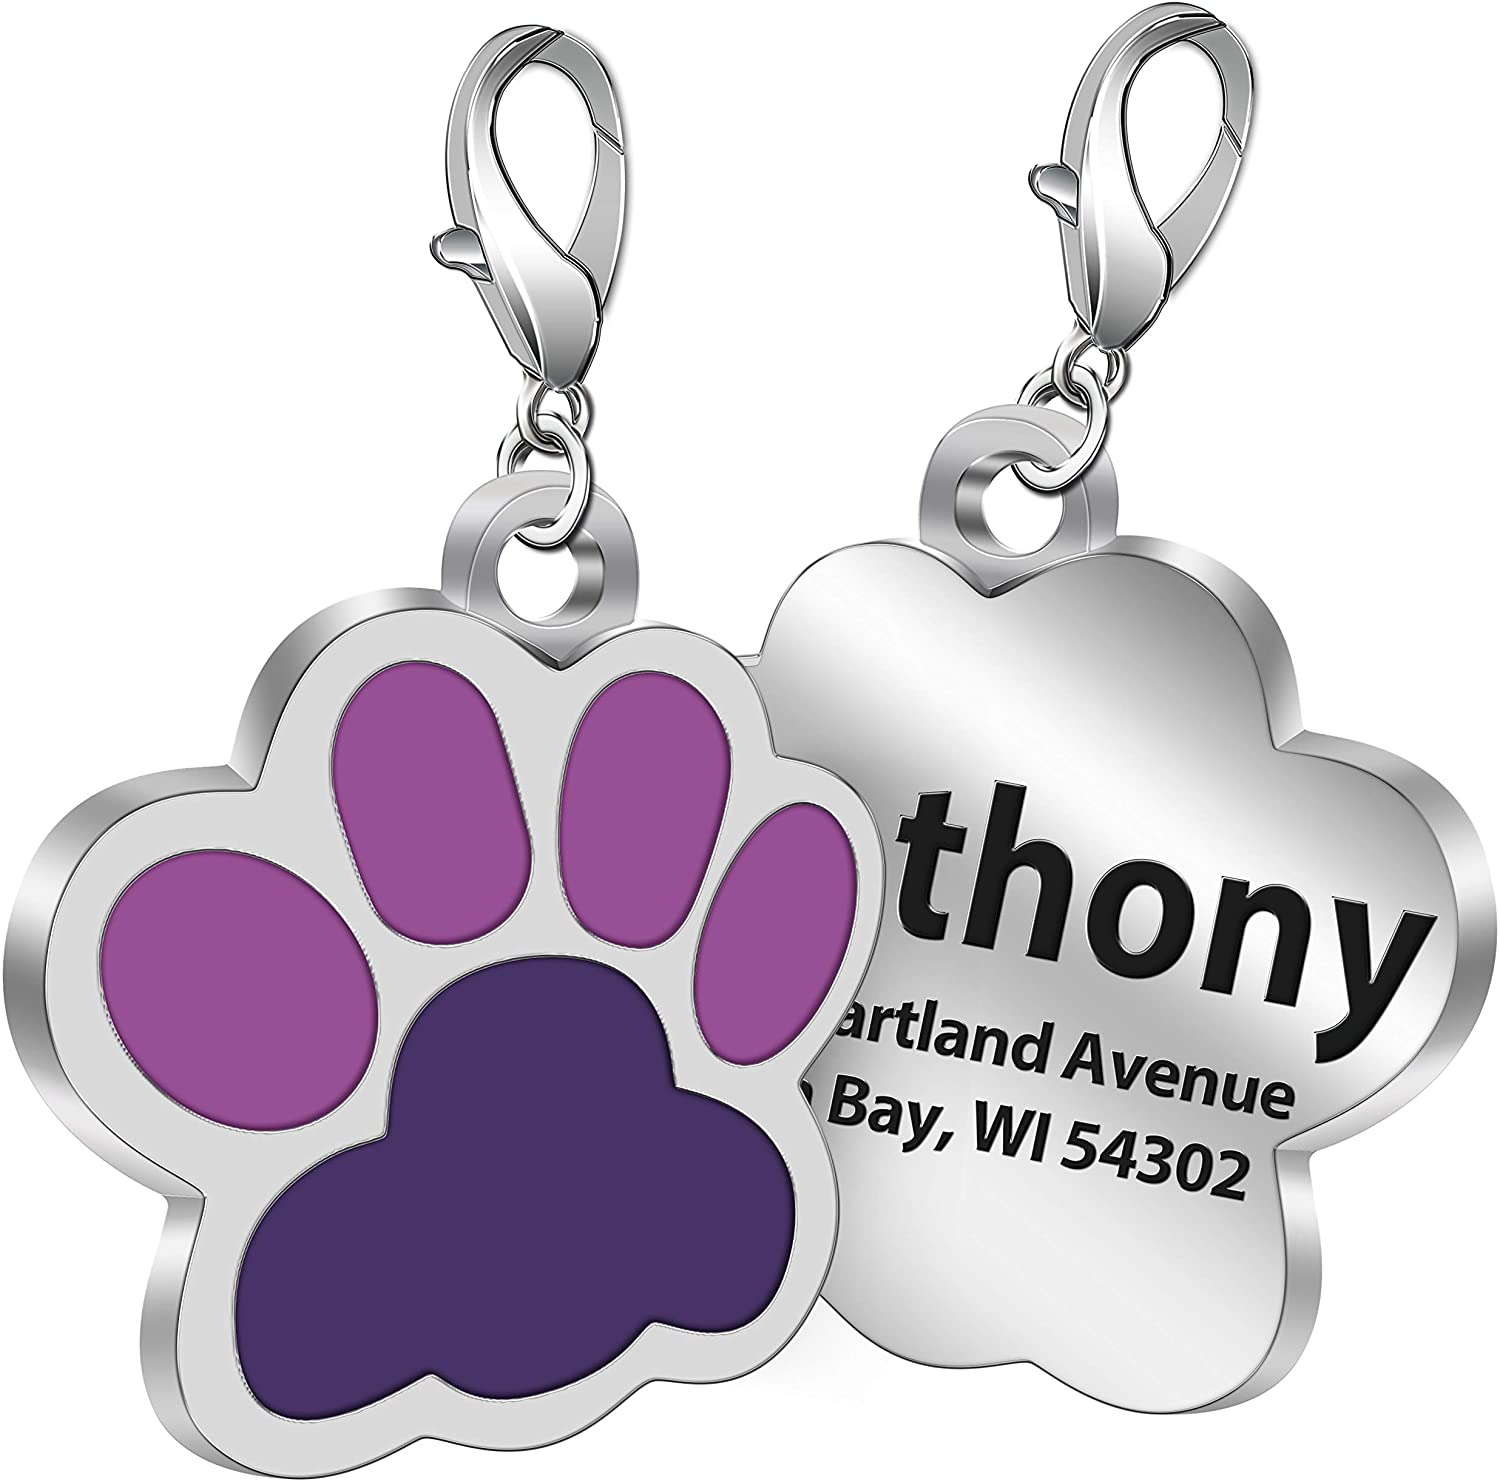 Personalized Engrave Paw Pet ID Tag with Name Laser Etched on Stainless Steel, Custom Text for Dogs Cats